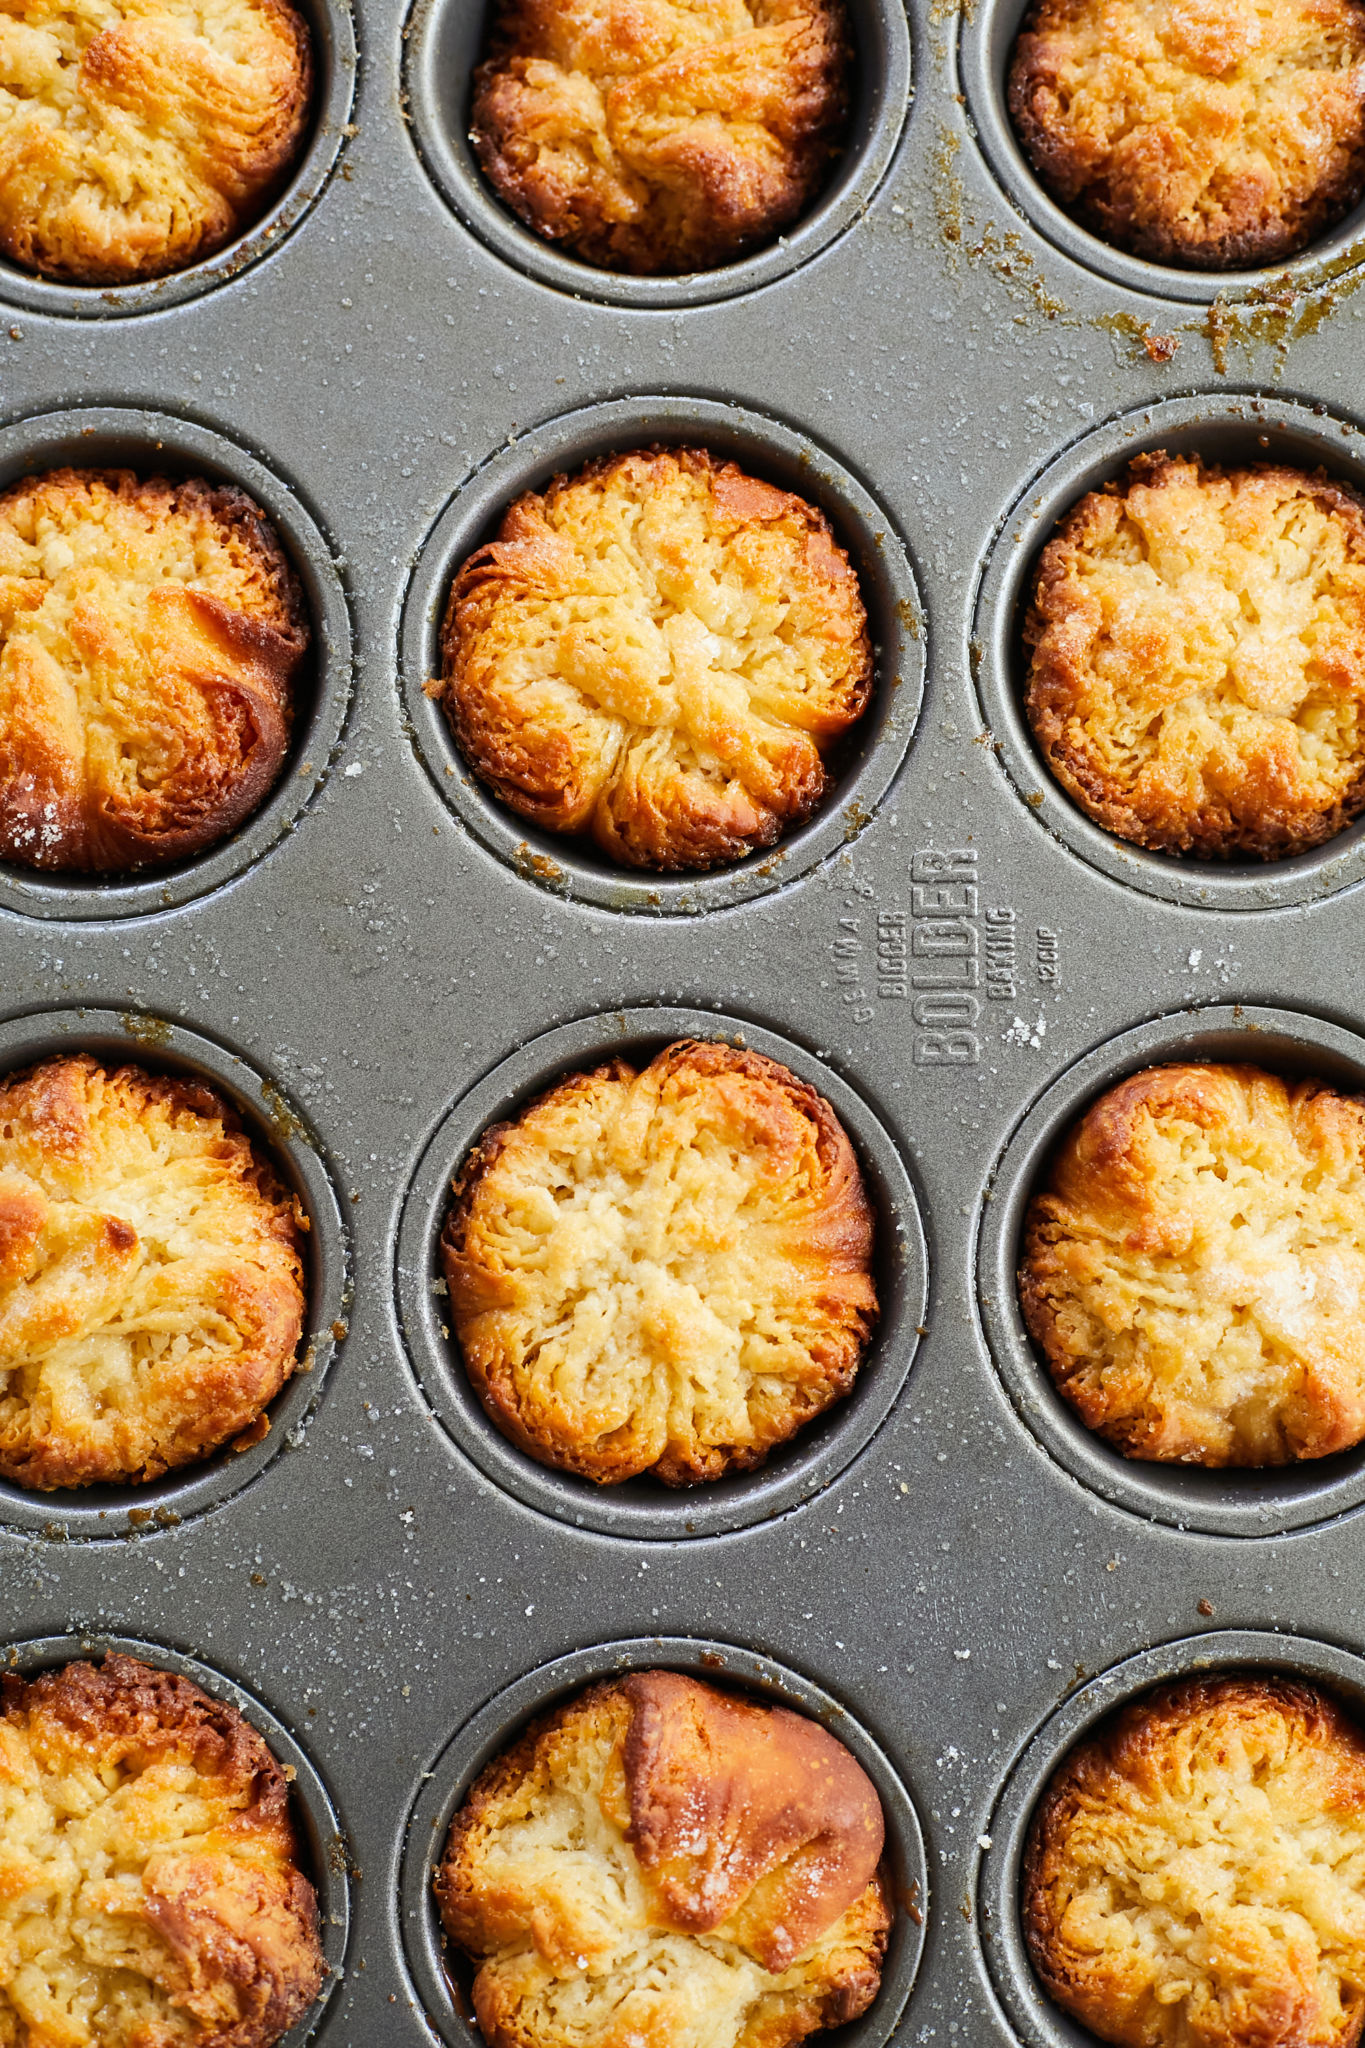 A muffin tin filled with baked Kouign-Amann pastries.